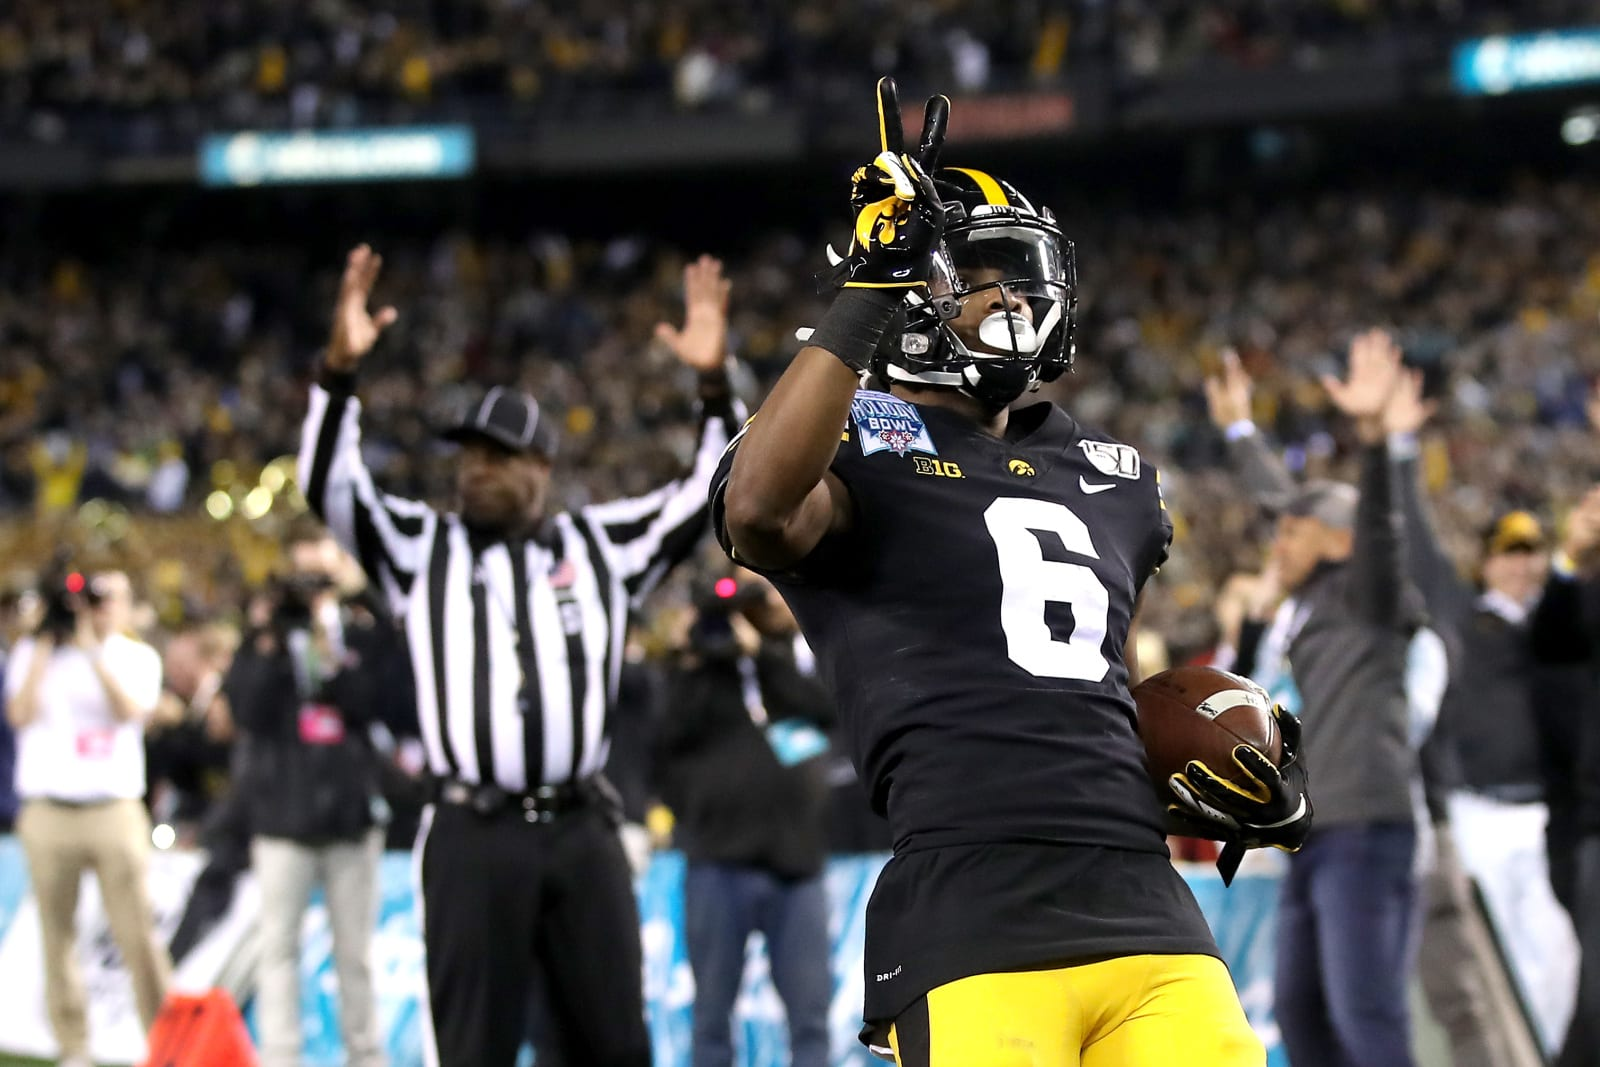 2021 NFL Draft: Fallout for Iowa Hawkeyes top prospects ...